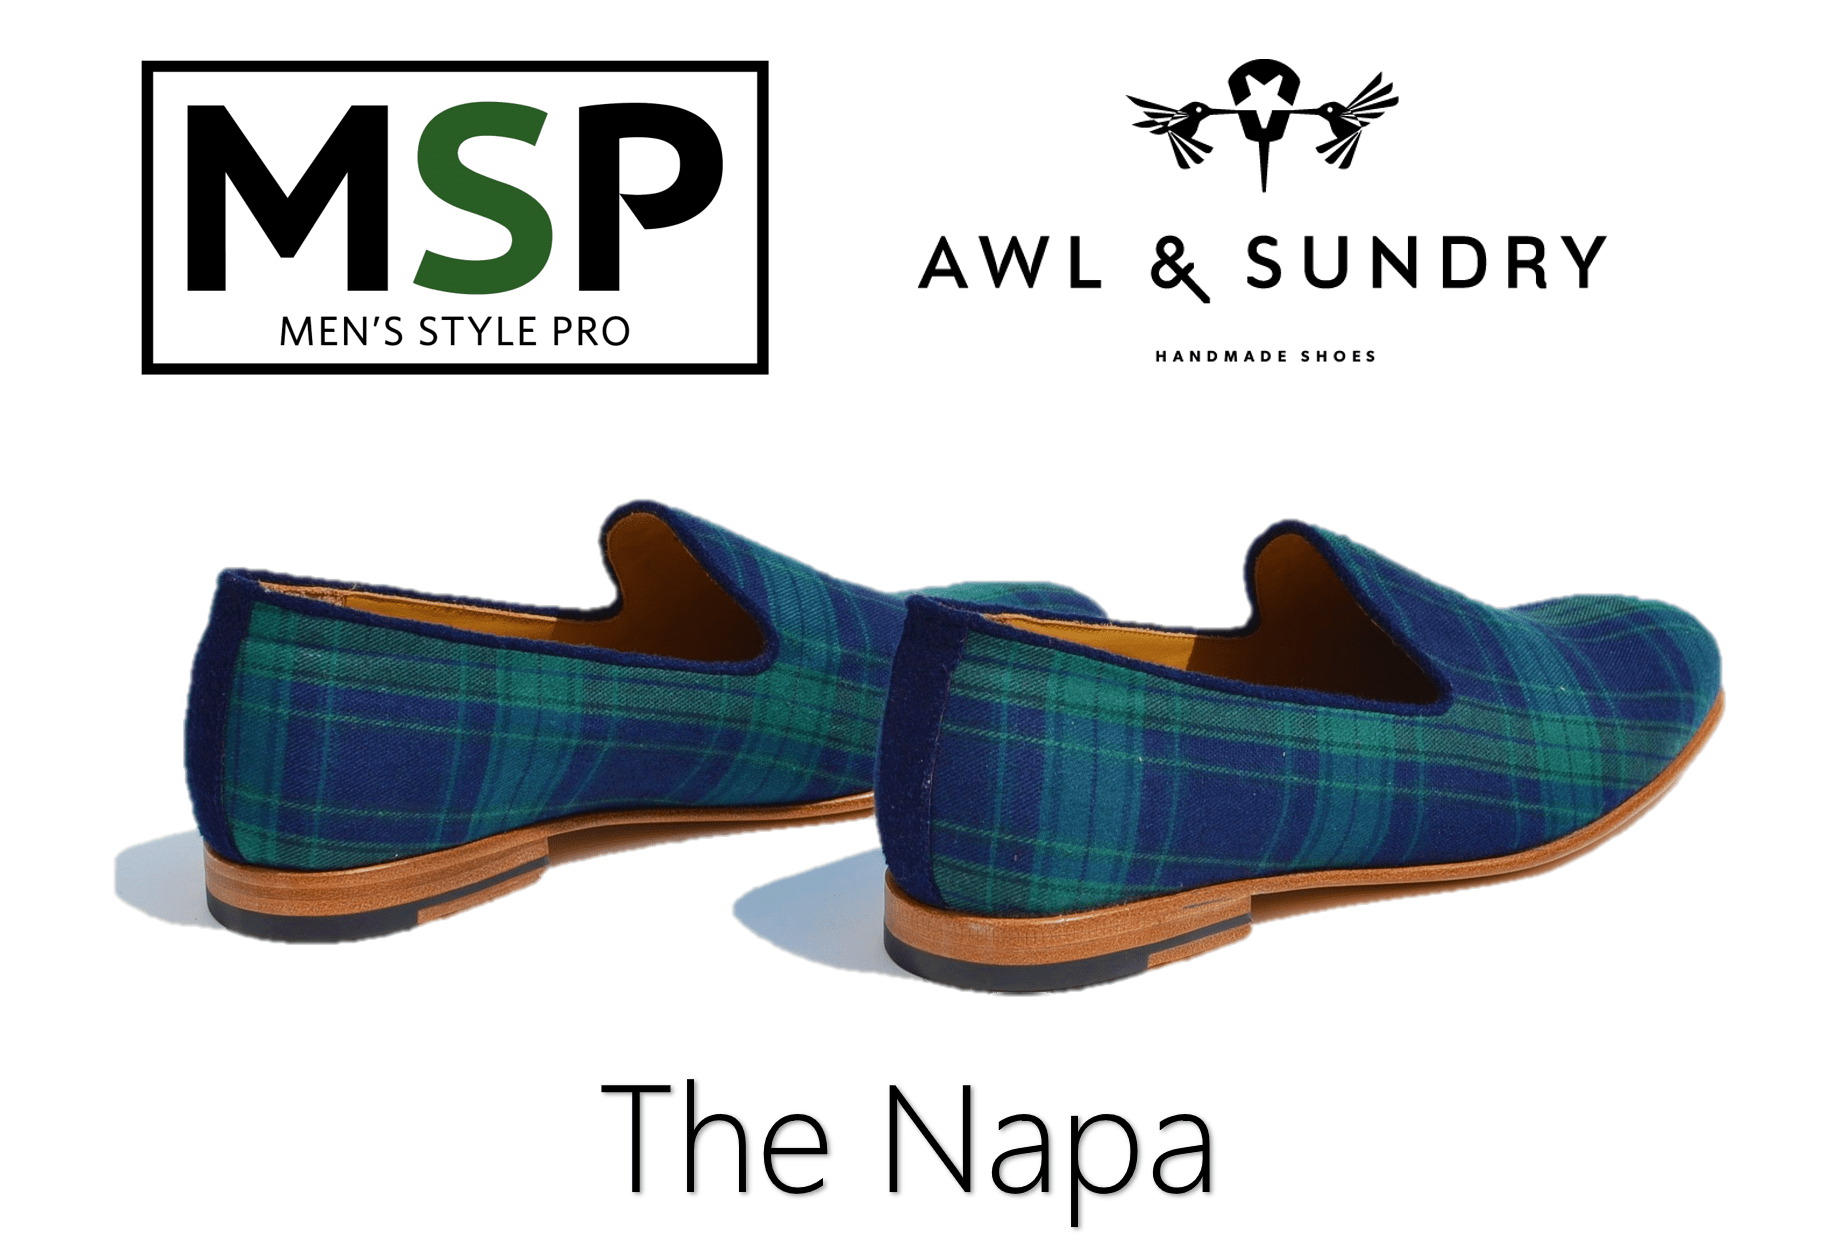 Men's Style Pro c Awl & Sundry Shoe Collaboration